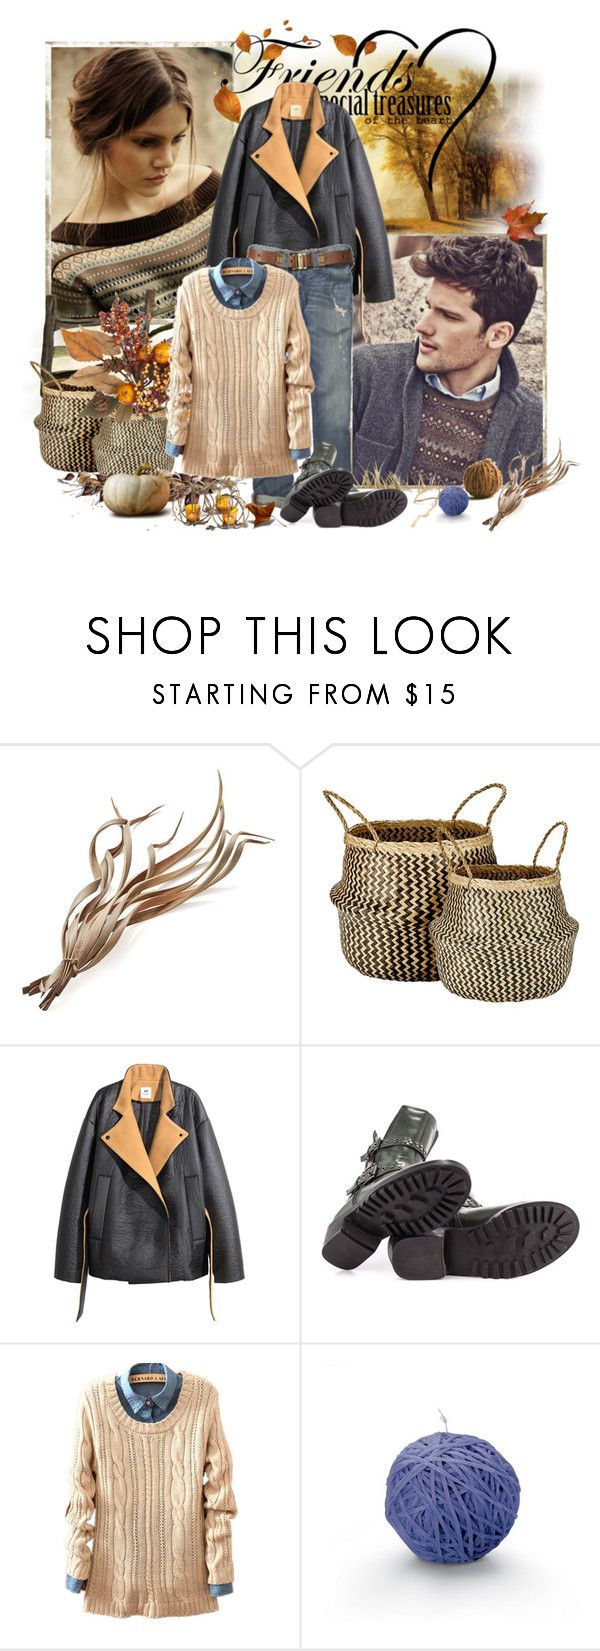 """мужчина и женщина"" by trendstar-212 ❤ liked on Polyvore featuring Crate and Barrel, Murmur, H&M, Penny Loves Kenny, Missoni Home and Pier 1 Imports"